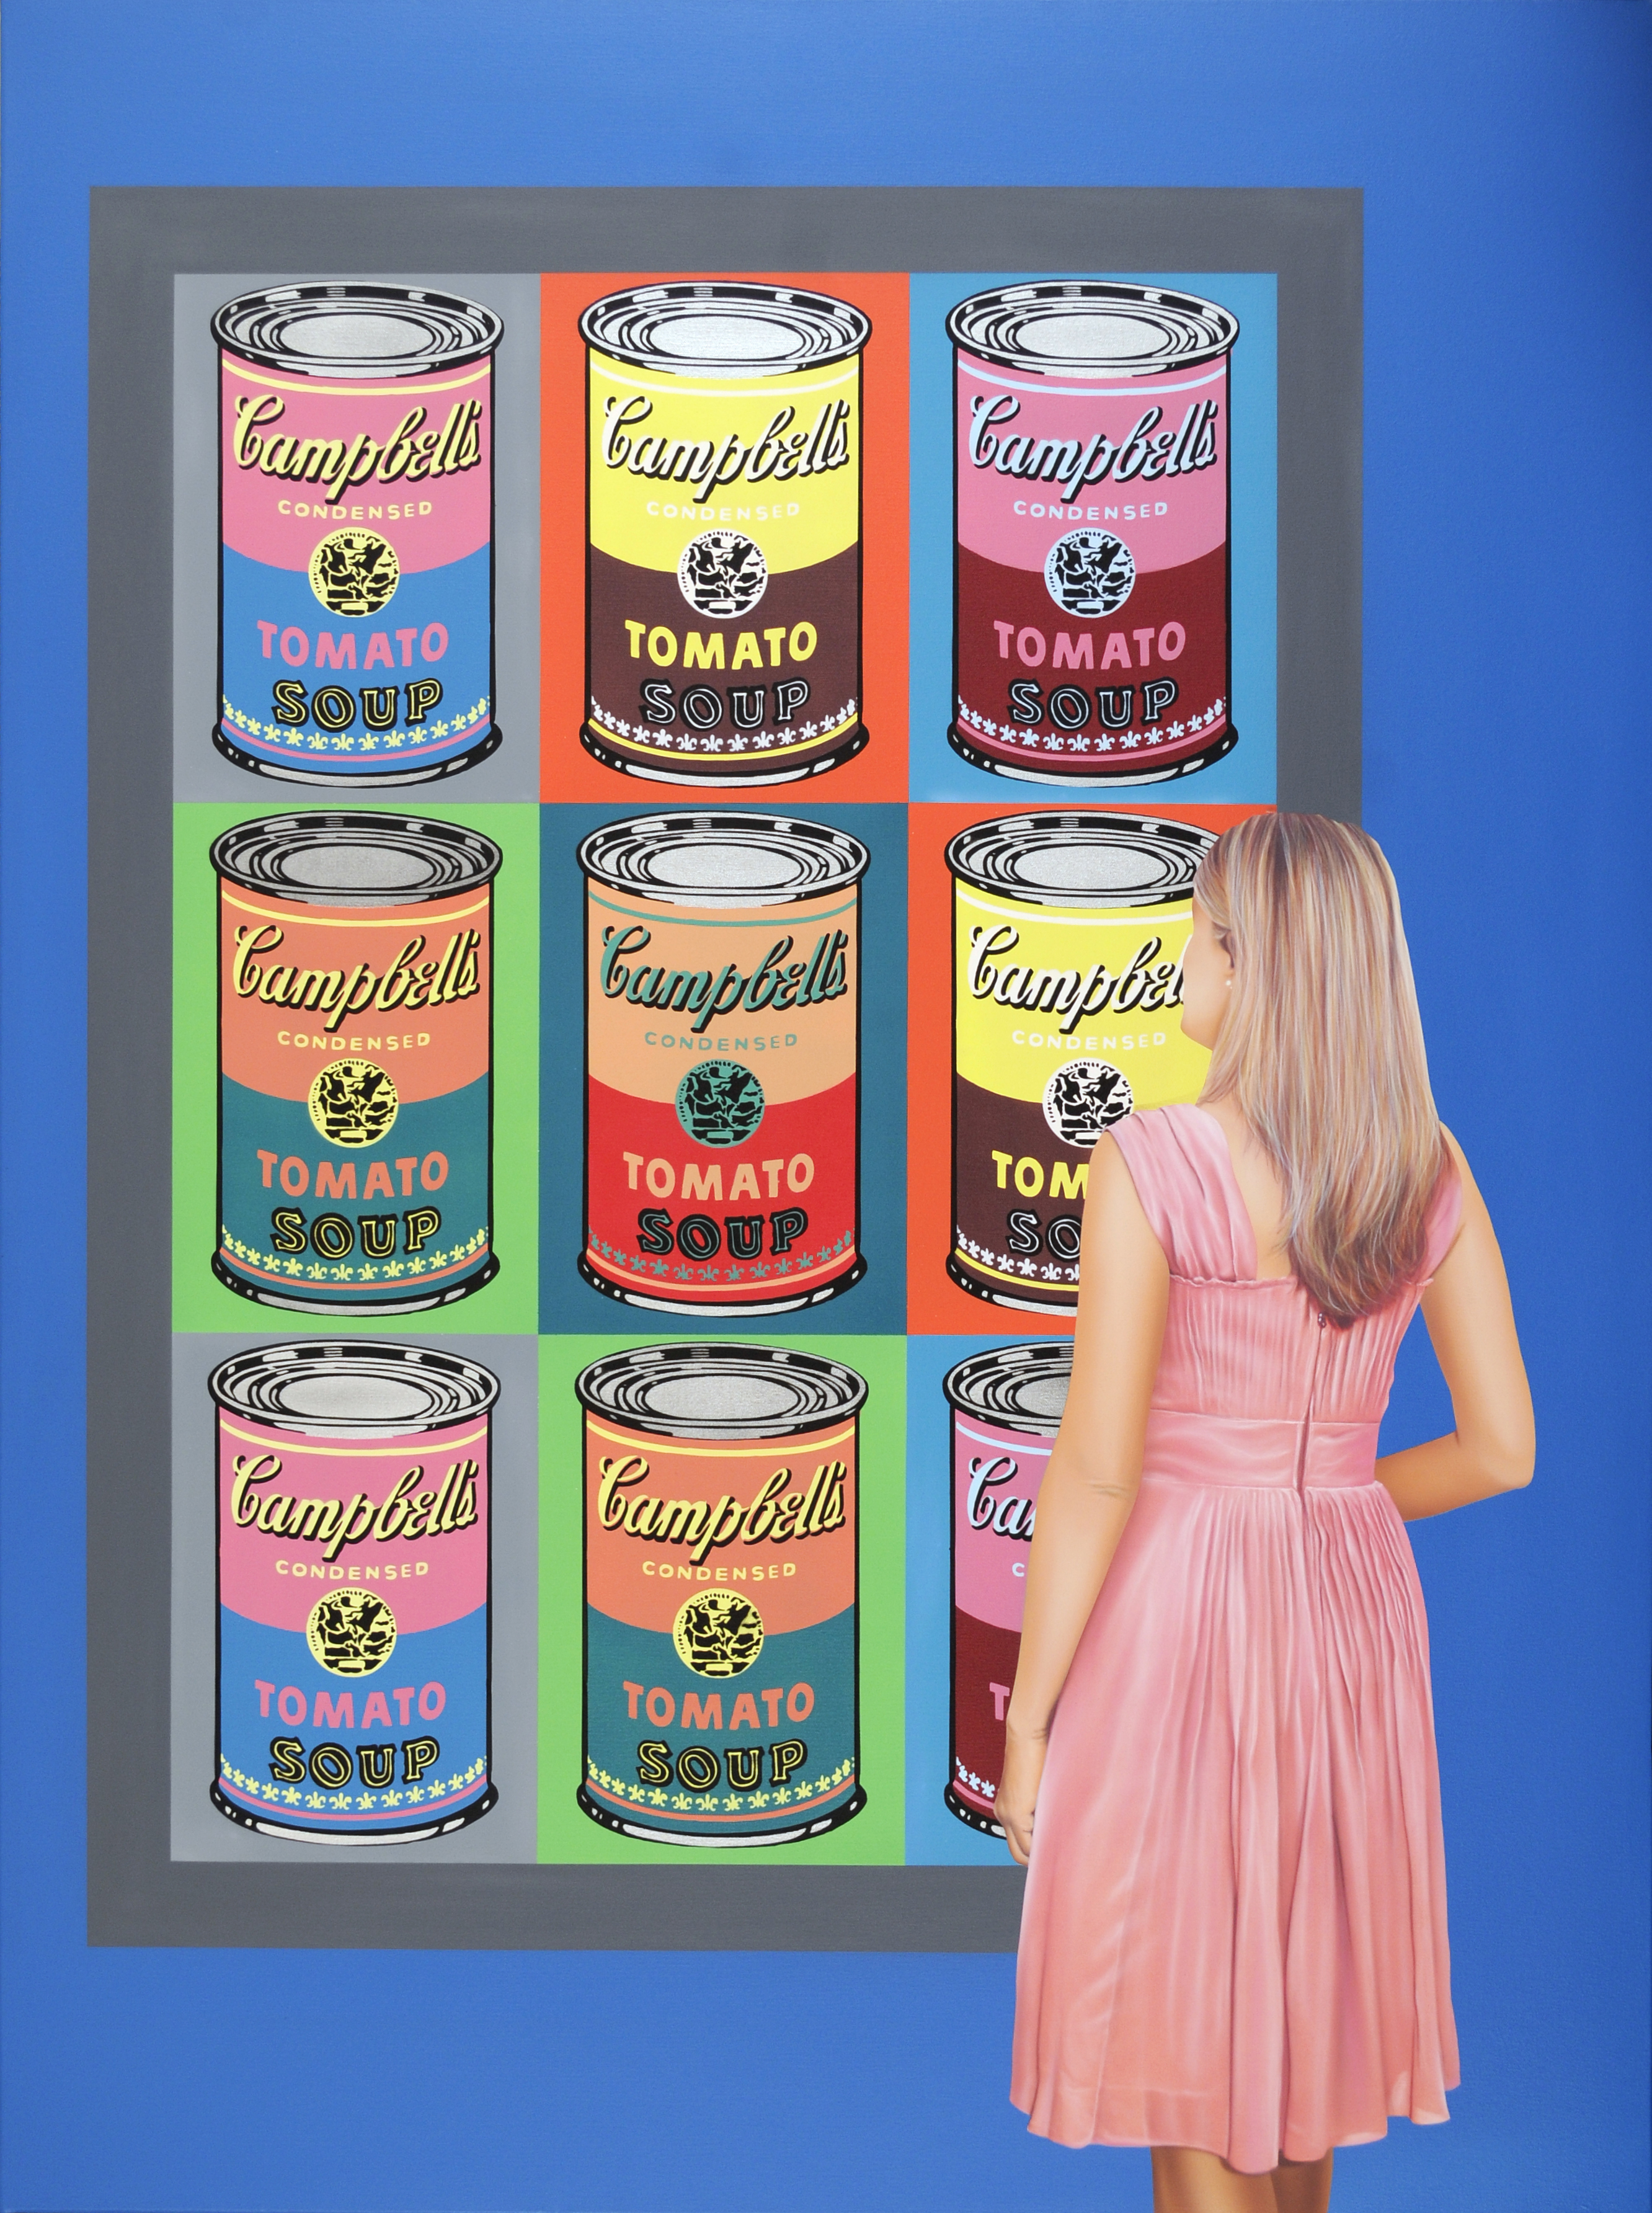 Musee campbell soup warhol